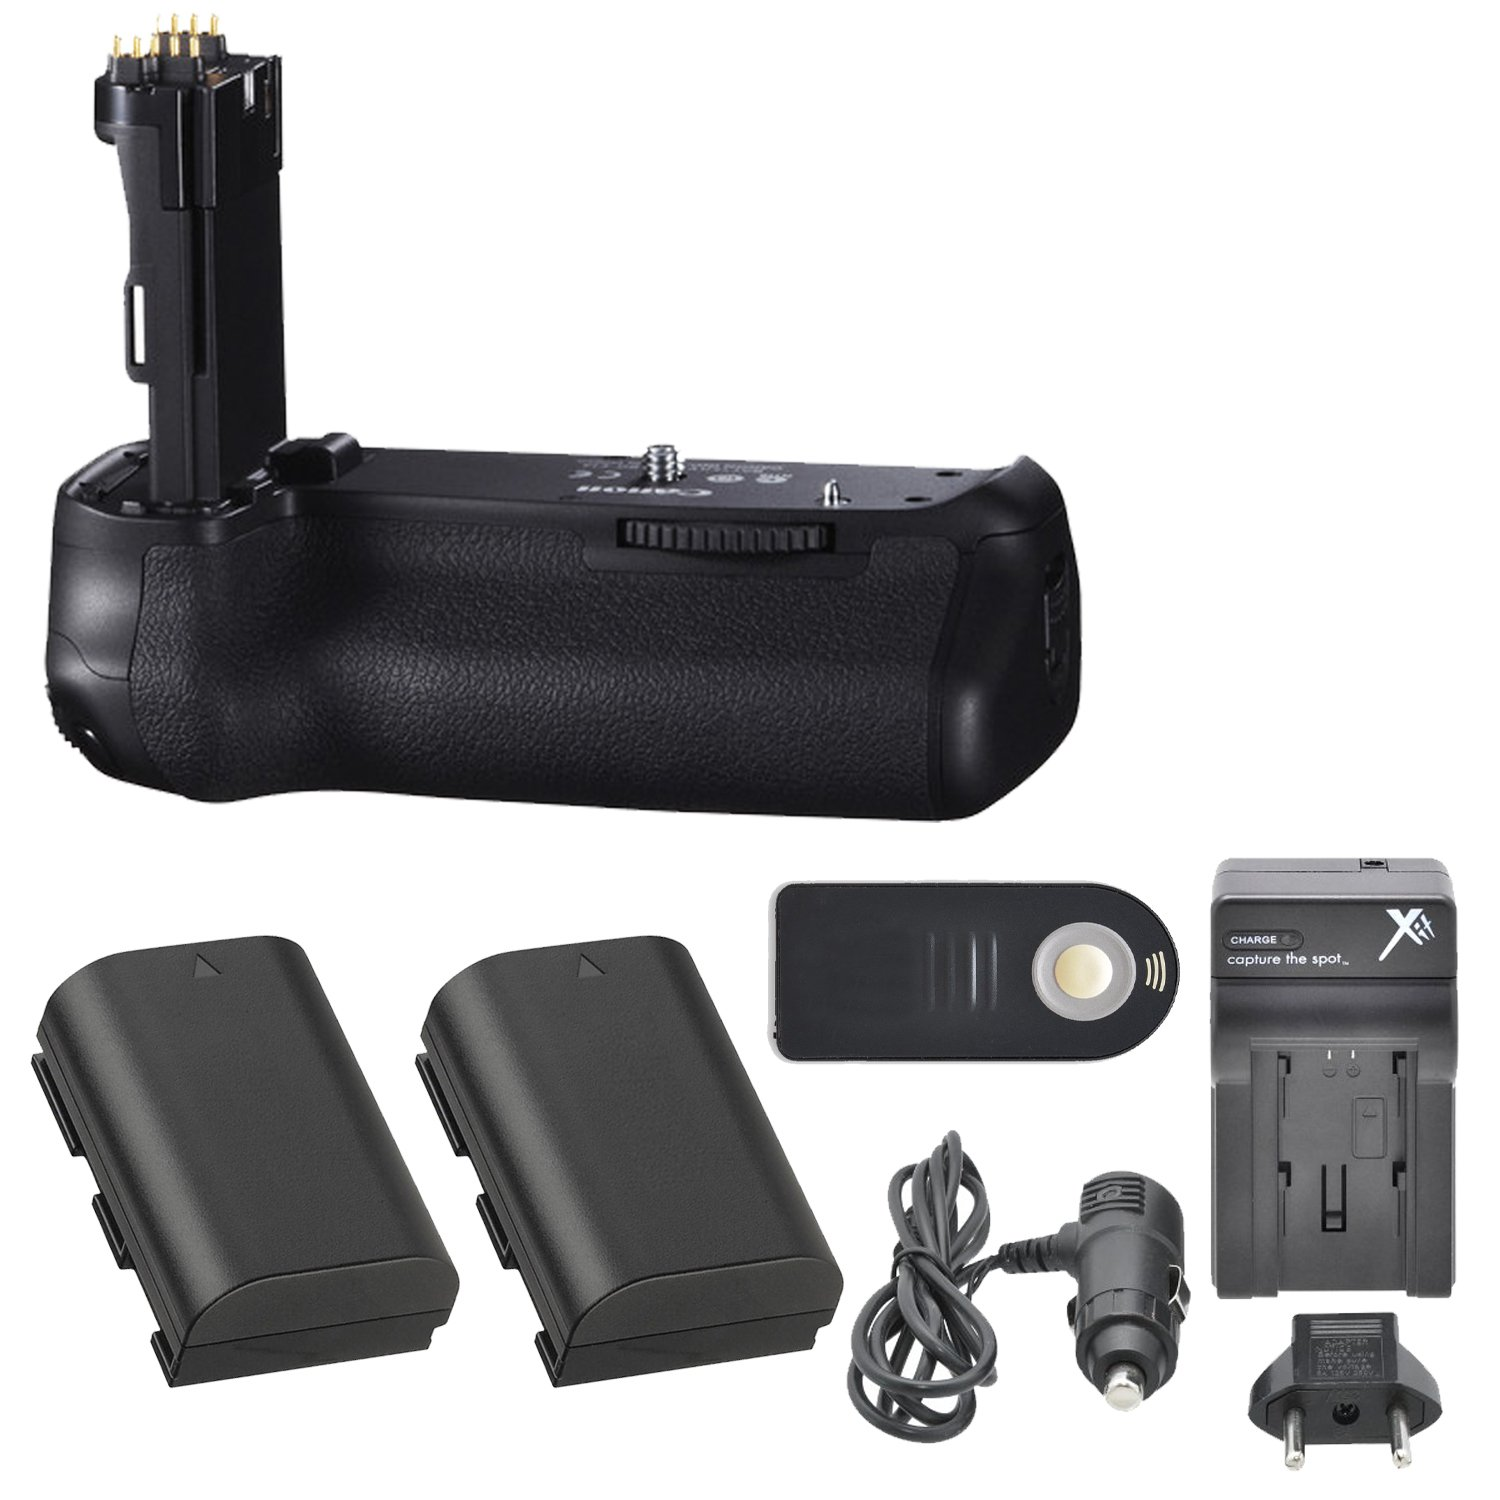 Canon BG-E14 Battery Grip with 2 Extra Batteries (LP-E6), Compact AC/DC Travel Charger, Wireless Remote for EOS 70D and 80D Digital SLR DSLR Cameras